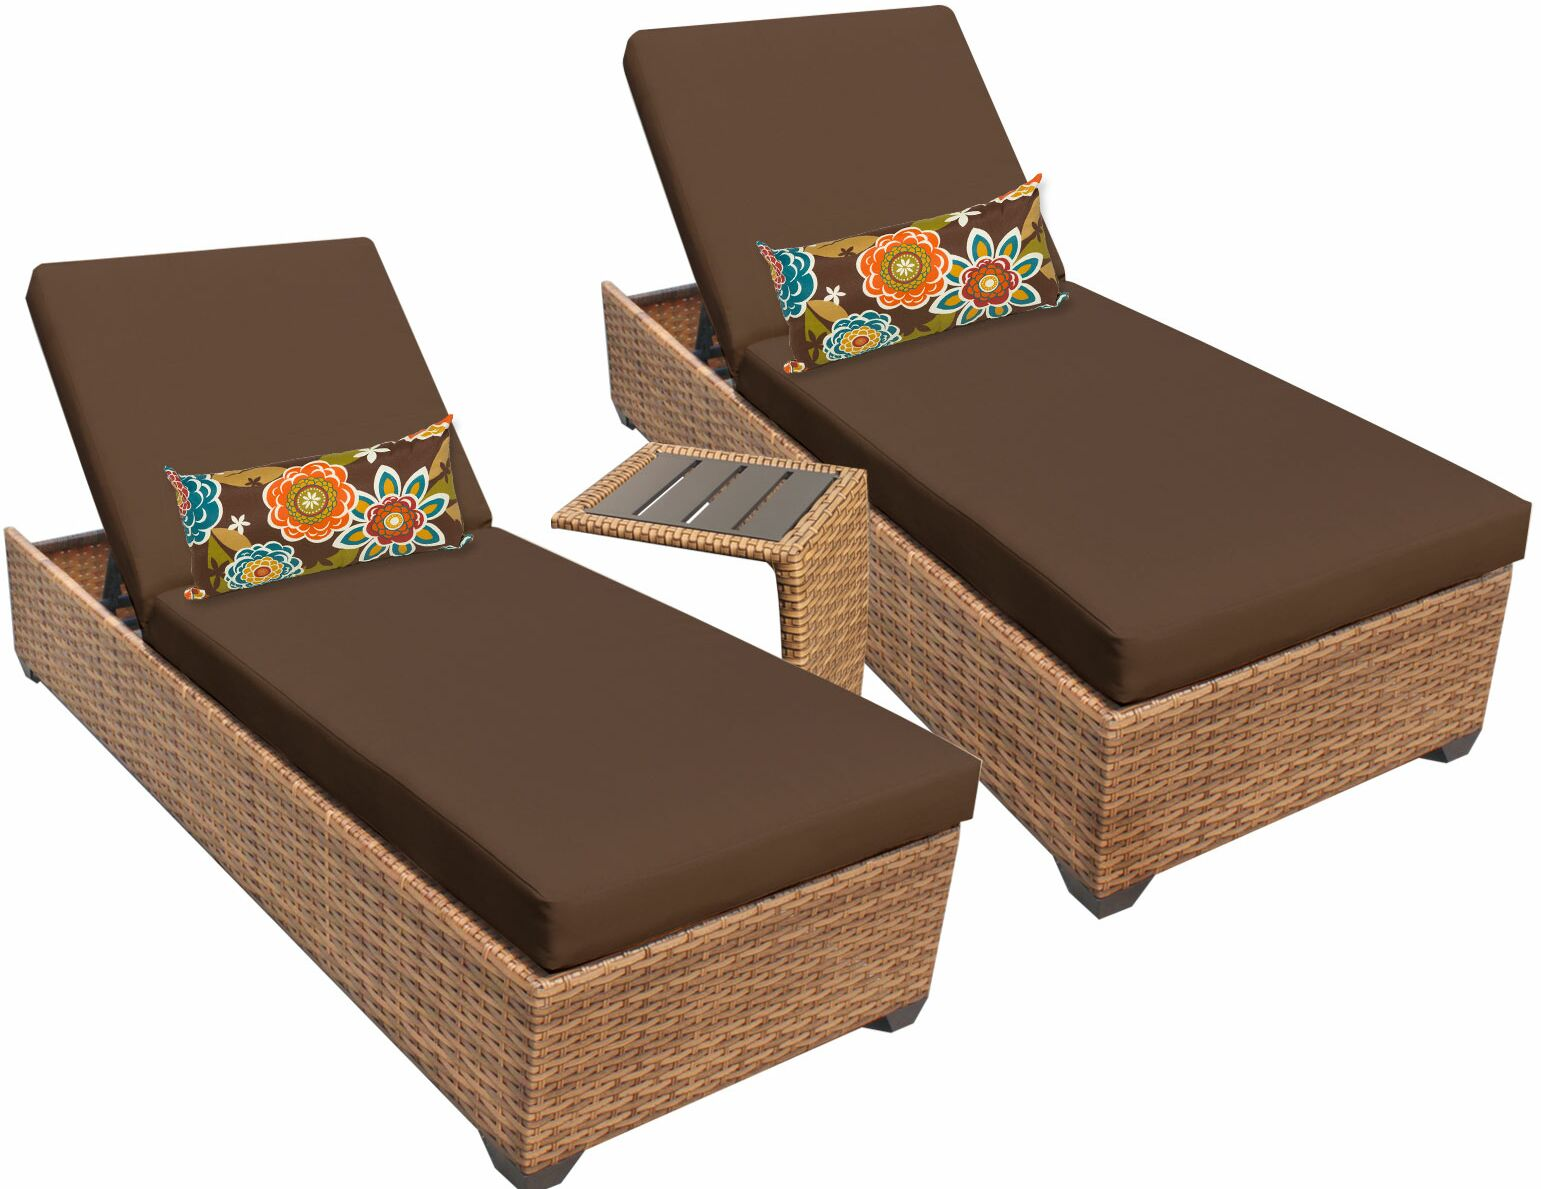 Asellus 3 Piece Chaise Lounge Set with Cushion Color: Cocoa